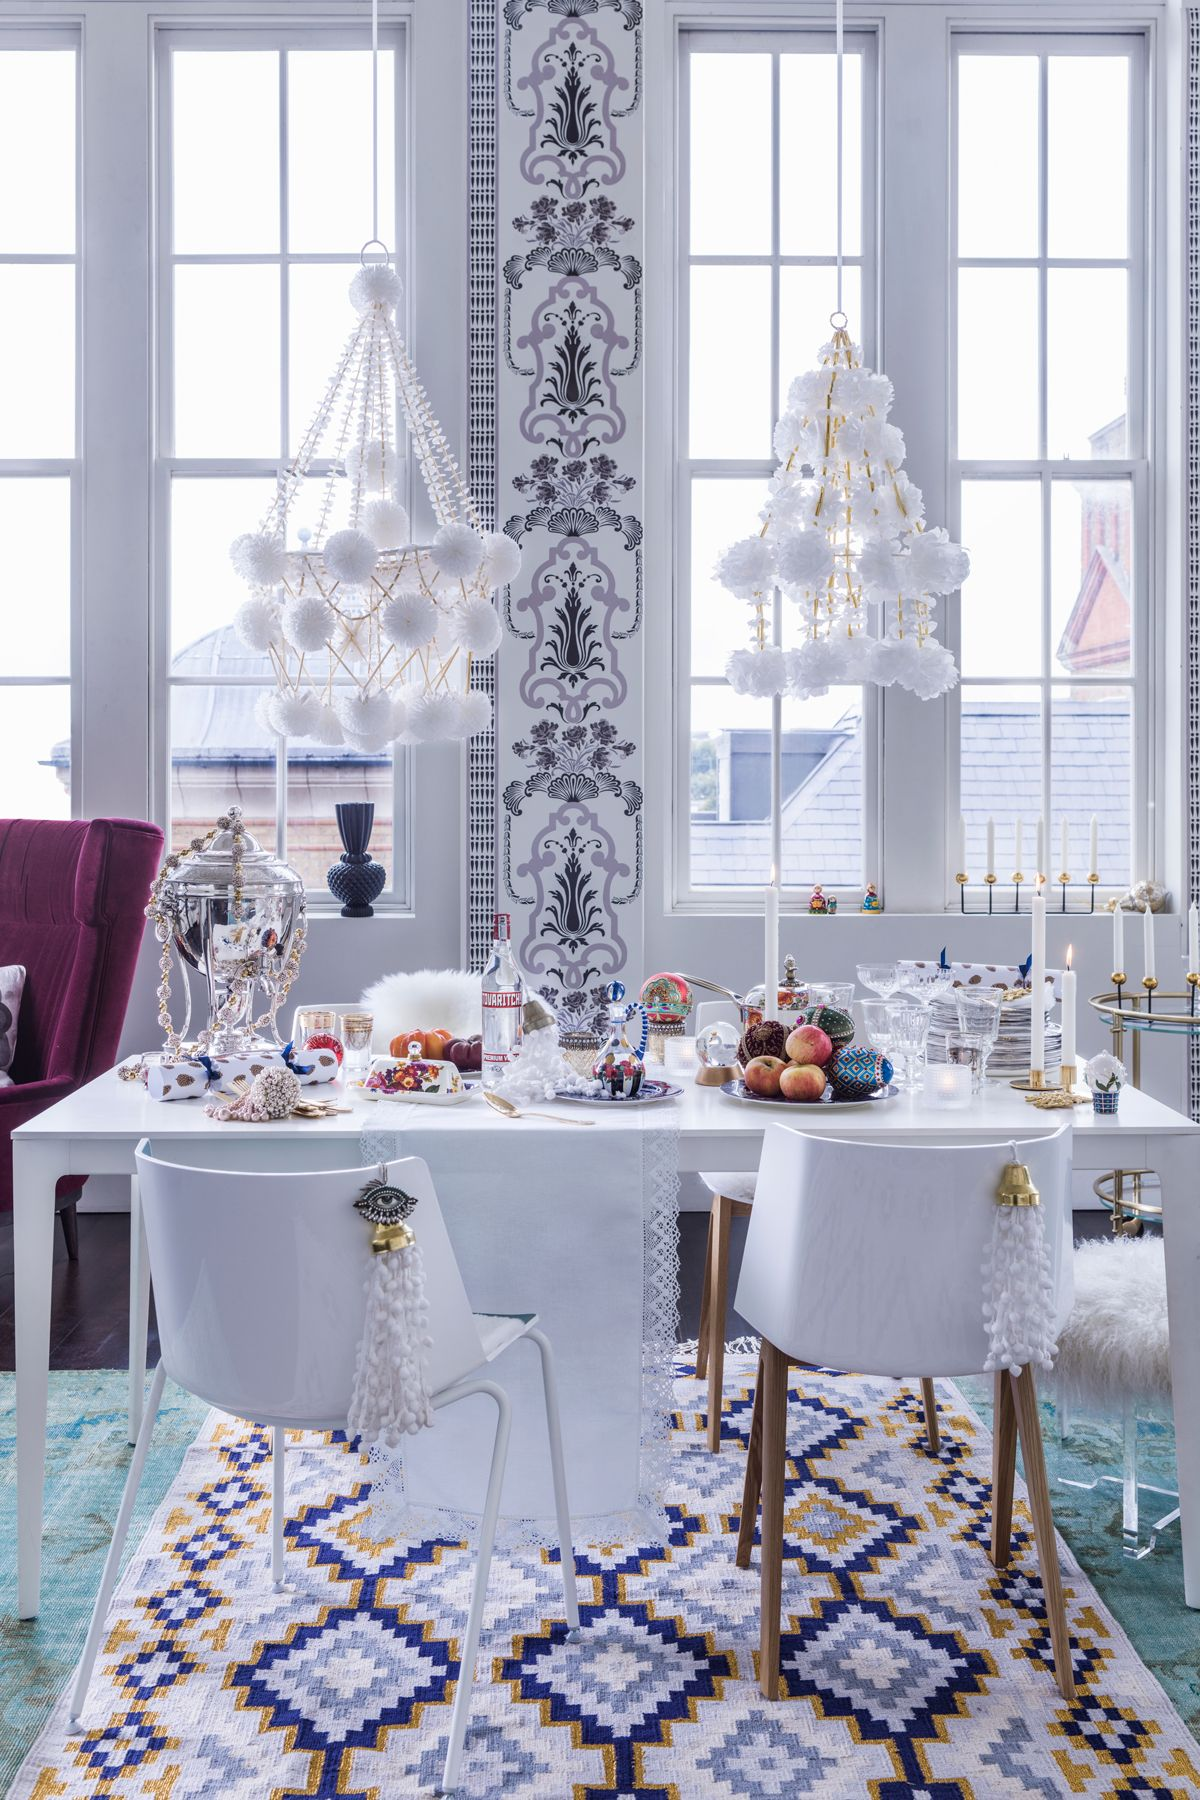 Take things up to a whole other level with this magical Christmas trend